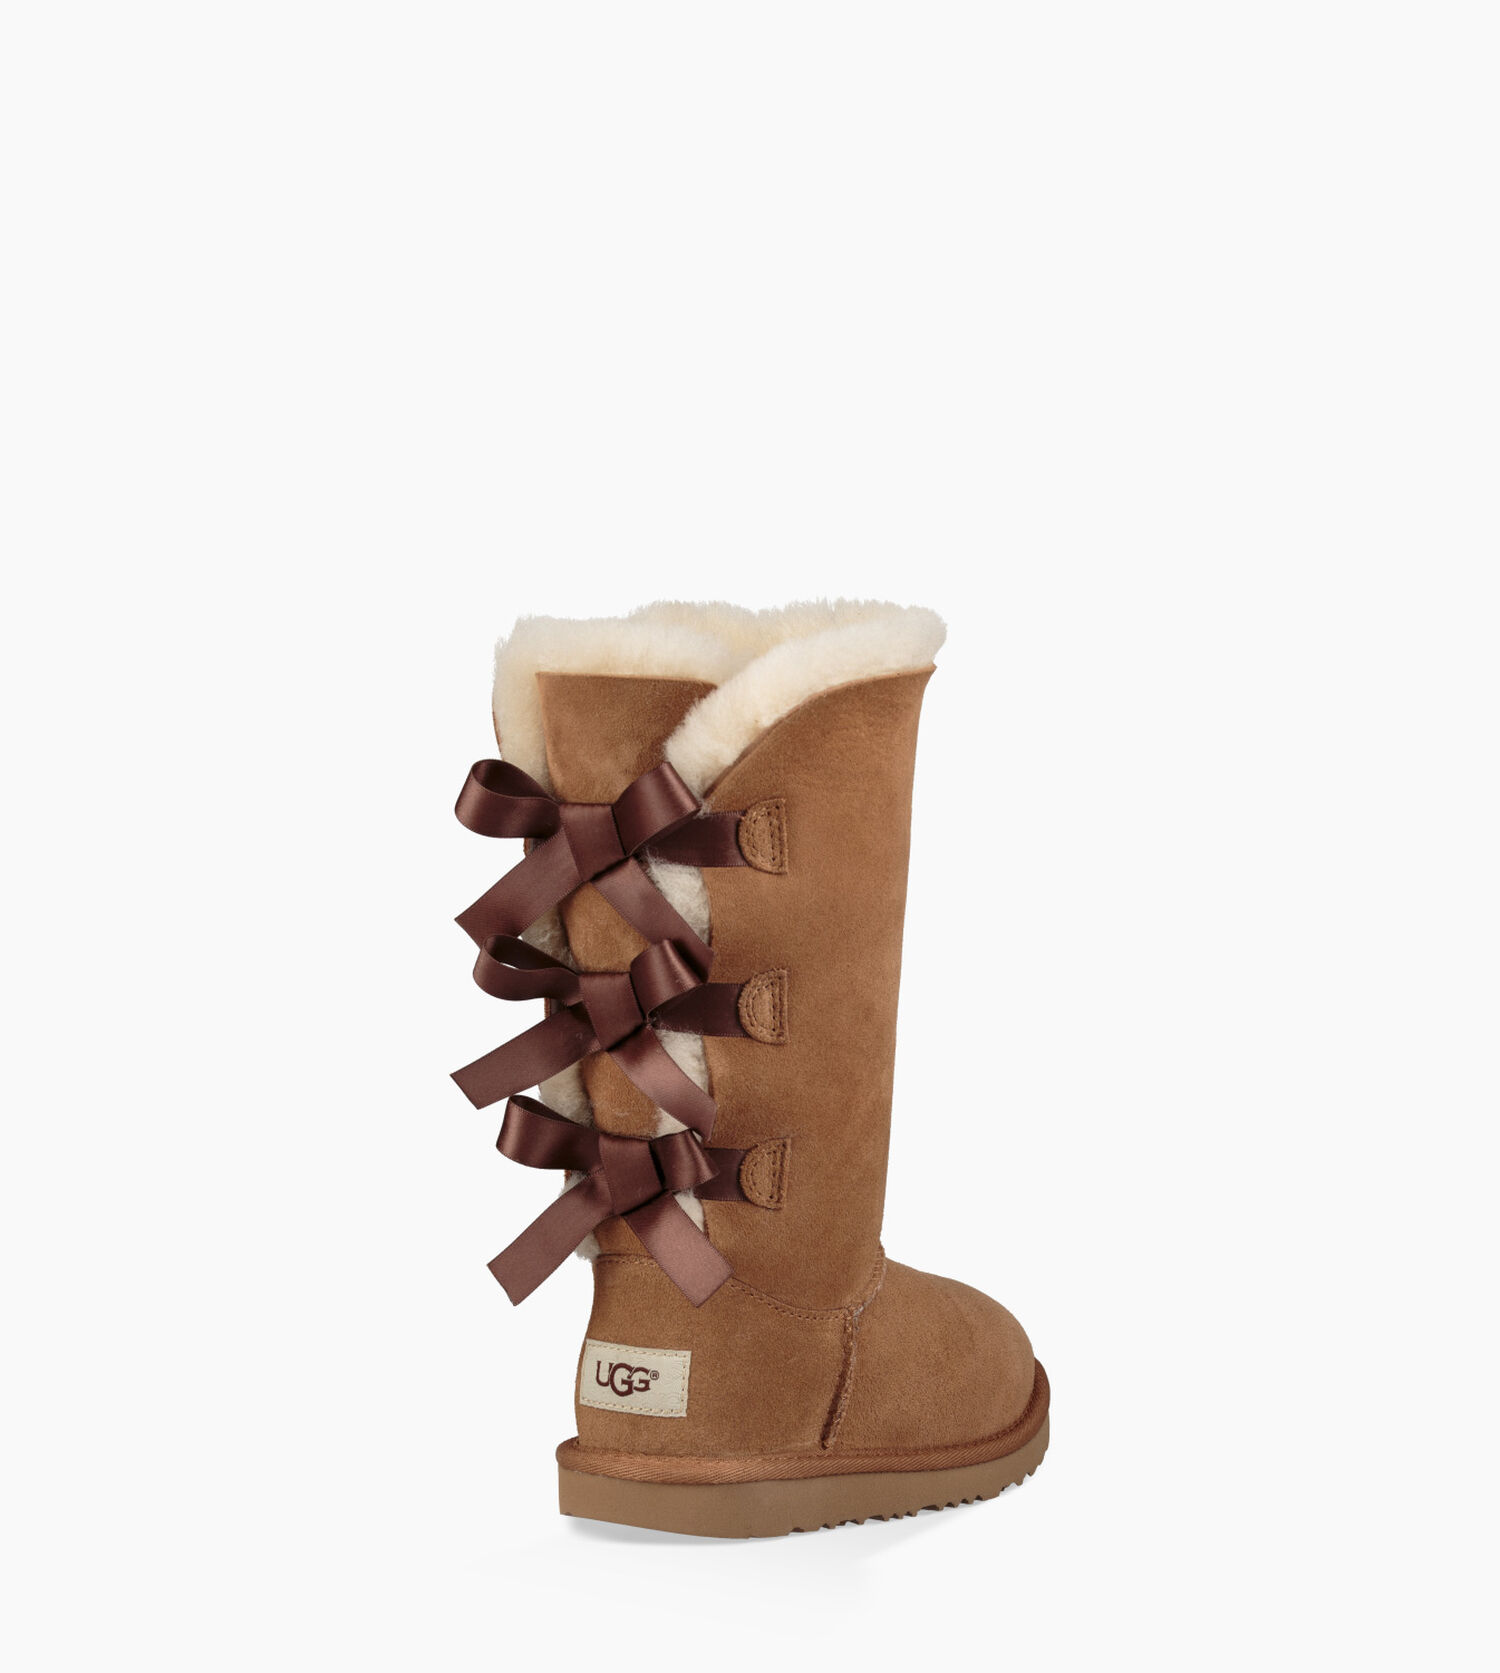 f4f8485d742 Toddler Girls' Shoes, Boots, & Slippers | UGG® Official